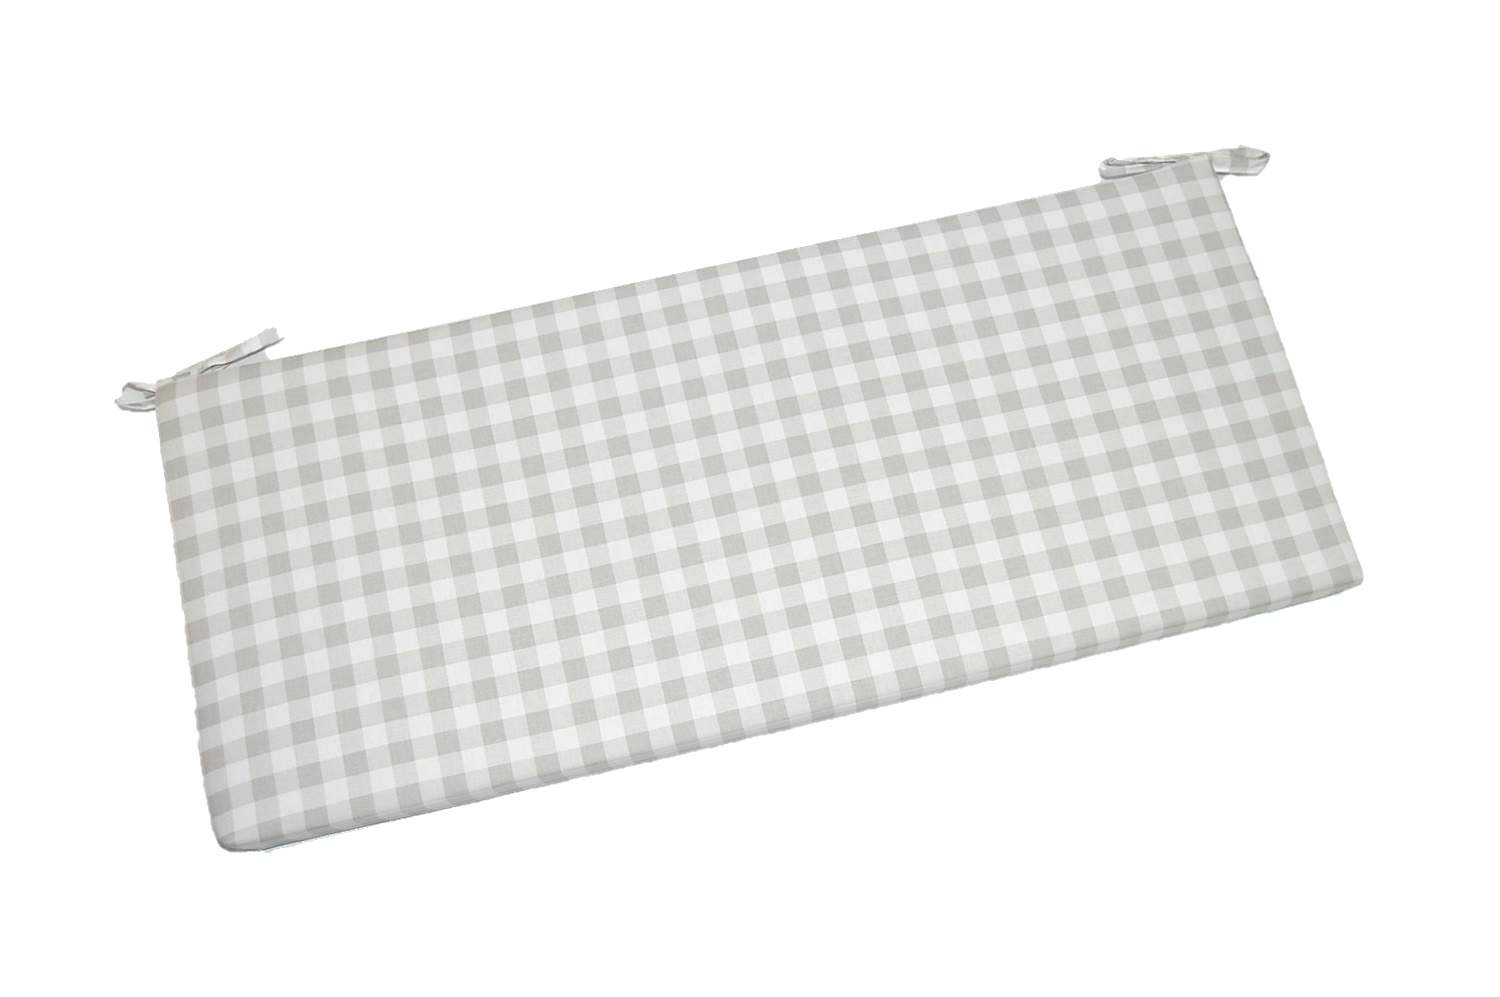 Gray / Grey Plaid / Country Checkered / Checkerboard 2'' Thick Foam Swing / Bench / Glider Cushion with Ties and Zipper - Choose Size (36'' x 14'')